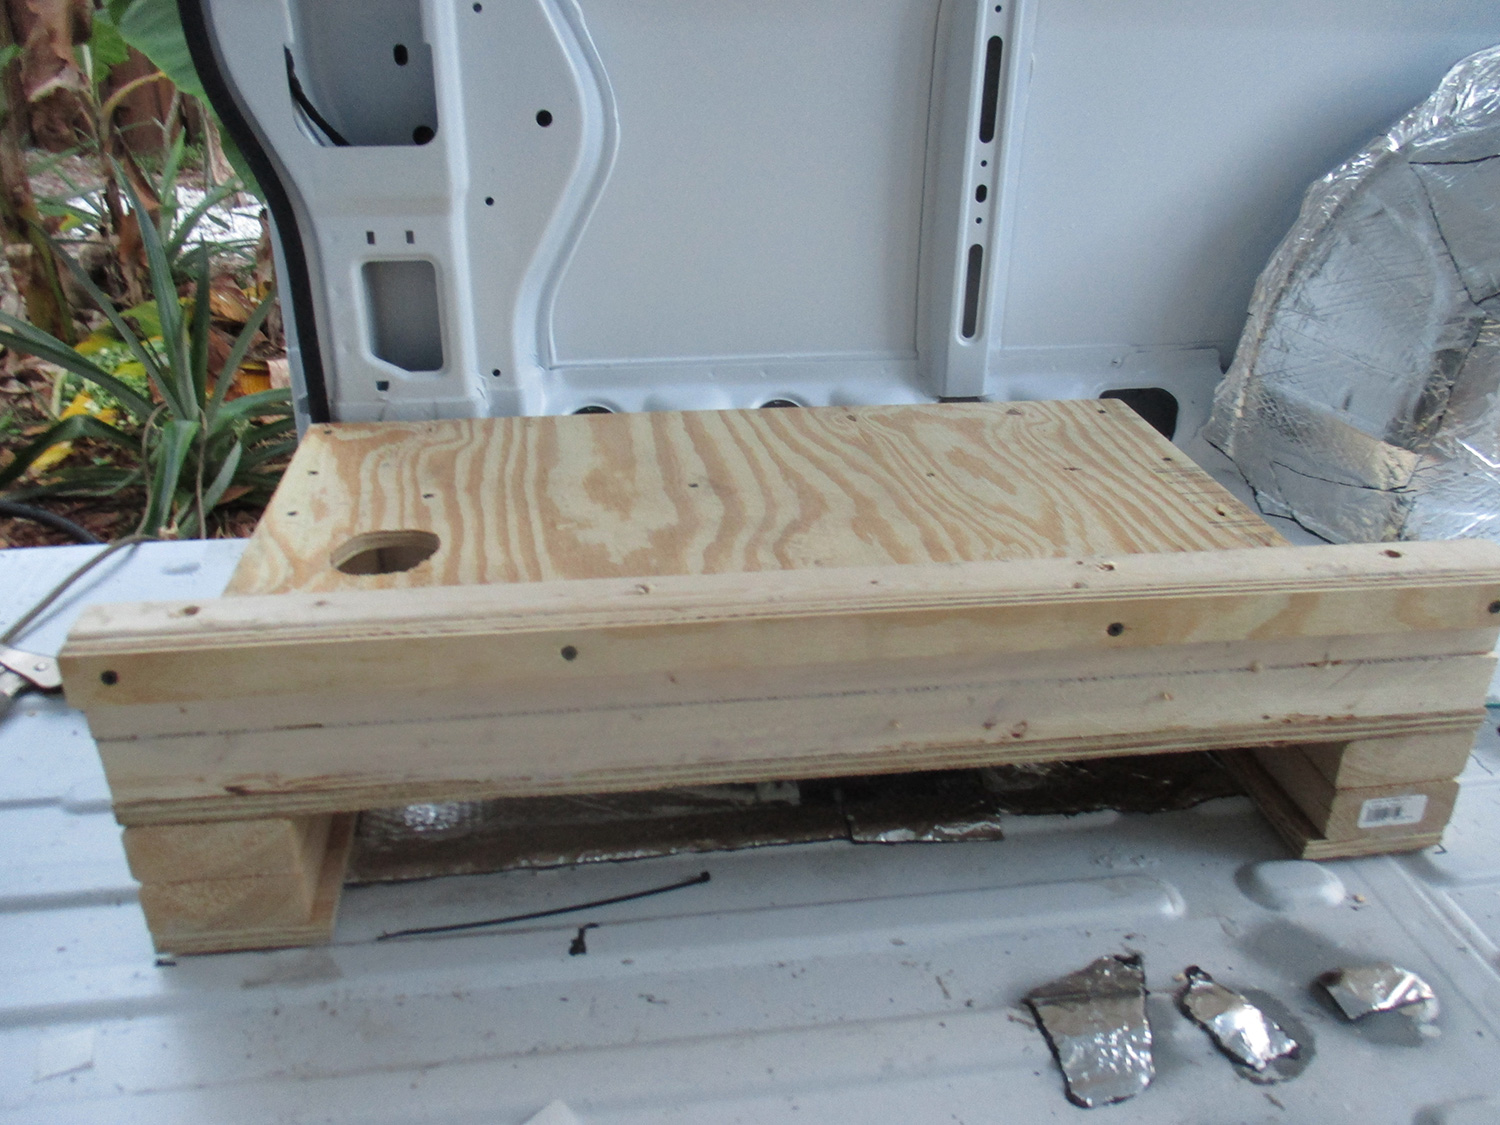 Building a Wet Bath and Shower into Promaster DIY Camper Van